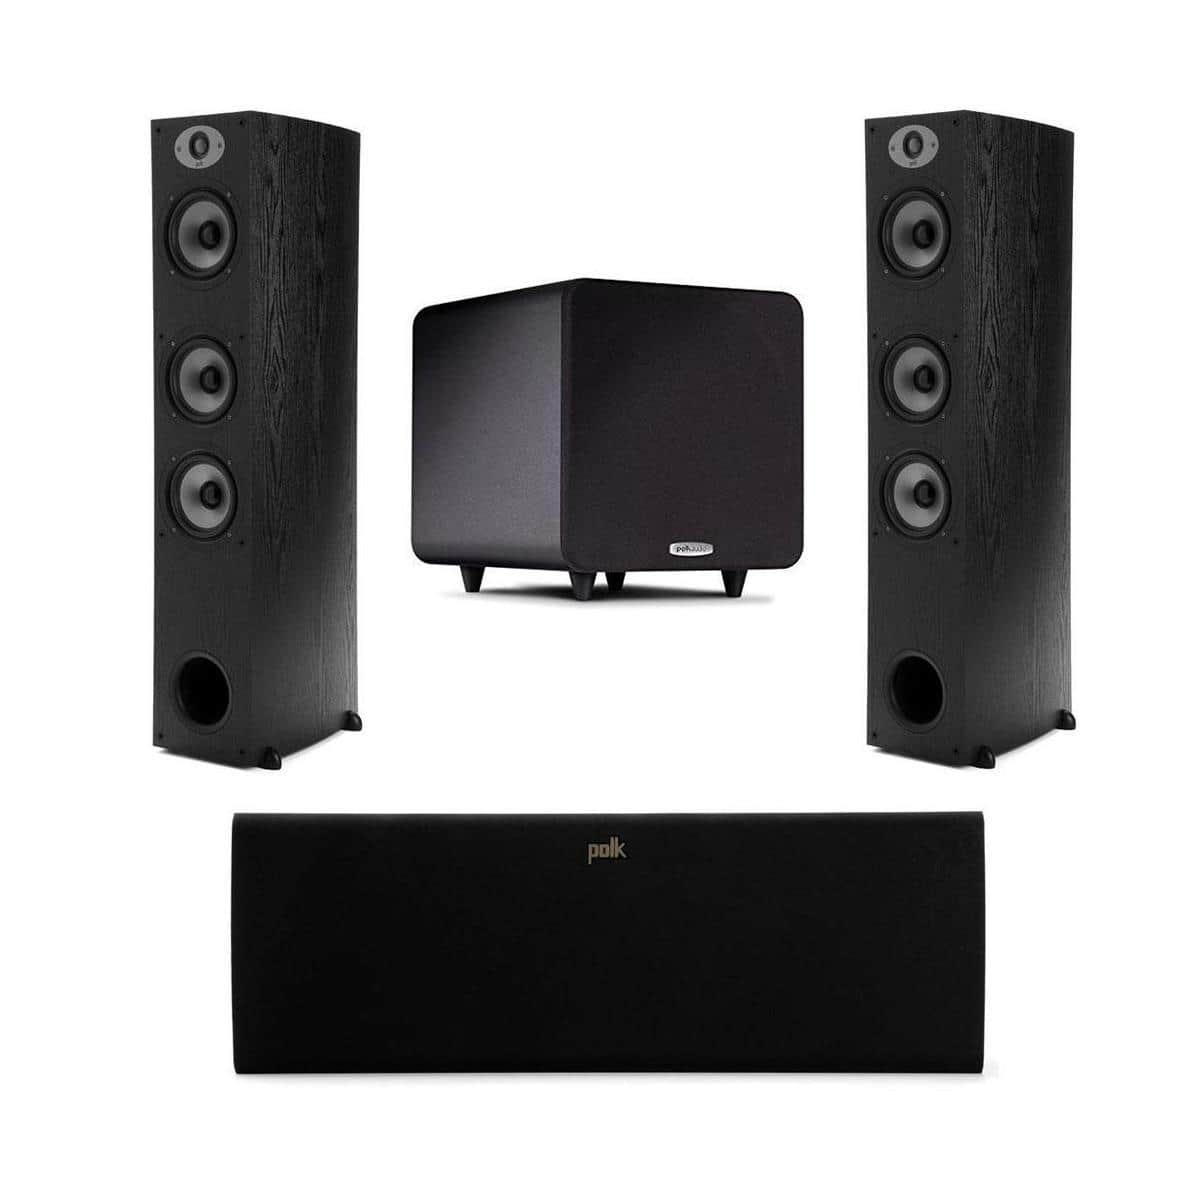 Polk Audio Speaker Bundle: (pair) TSx 440T Towers + TSx 250C Center + PSW111 Subwoofer $650 + free shipping